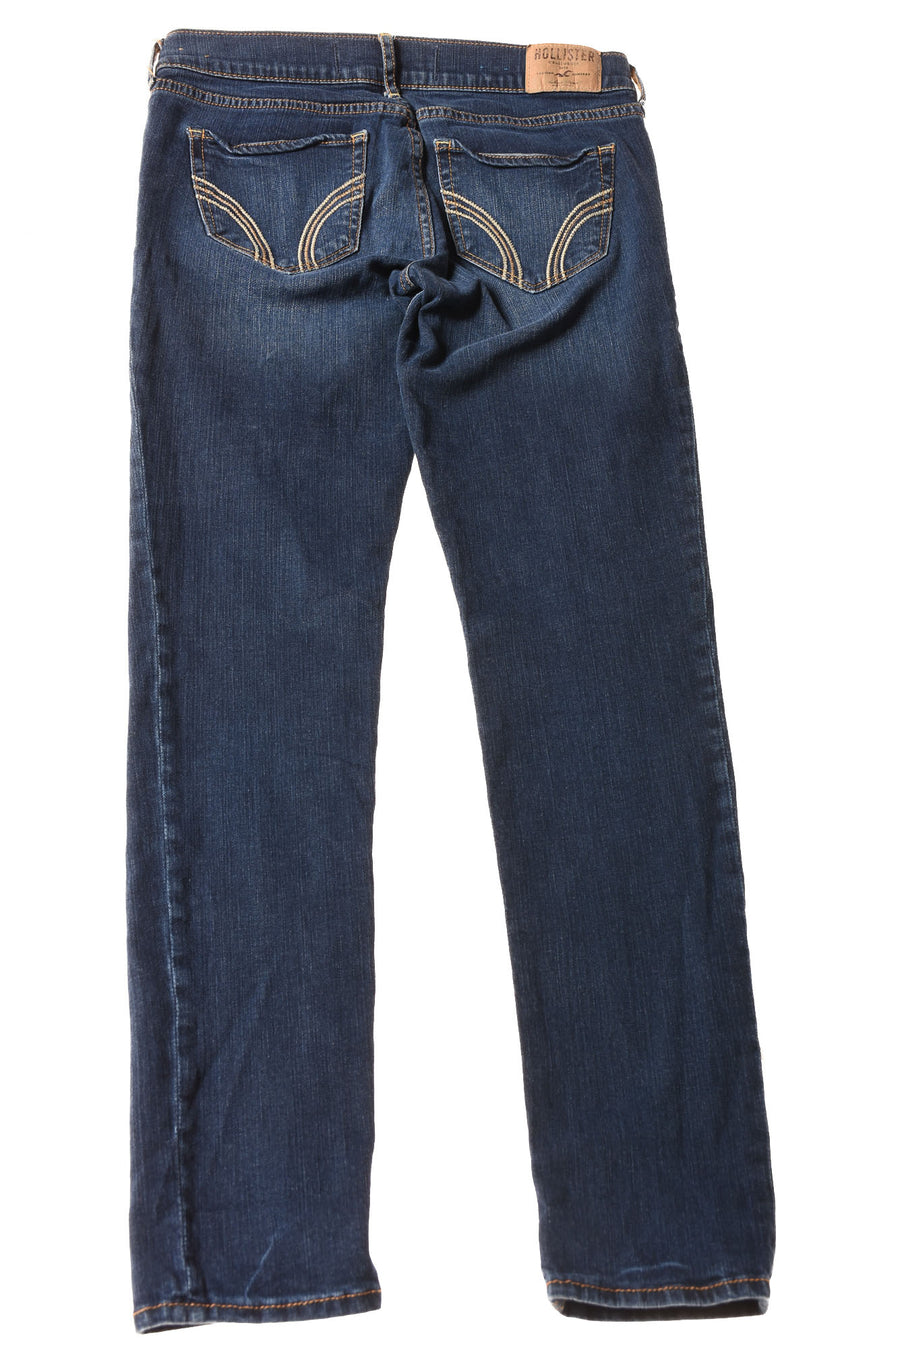 USED Hollister Women's Jeans 5 Blue